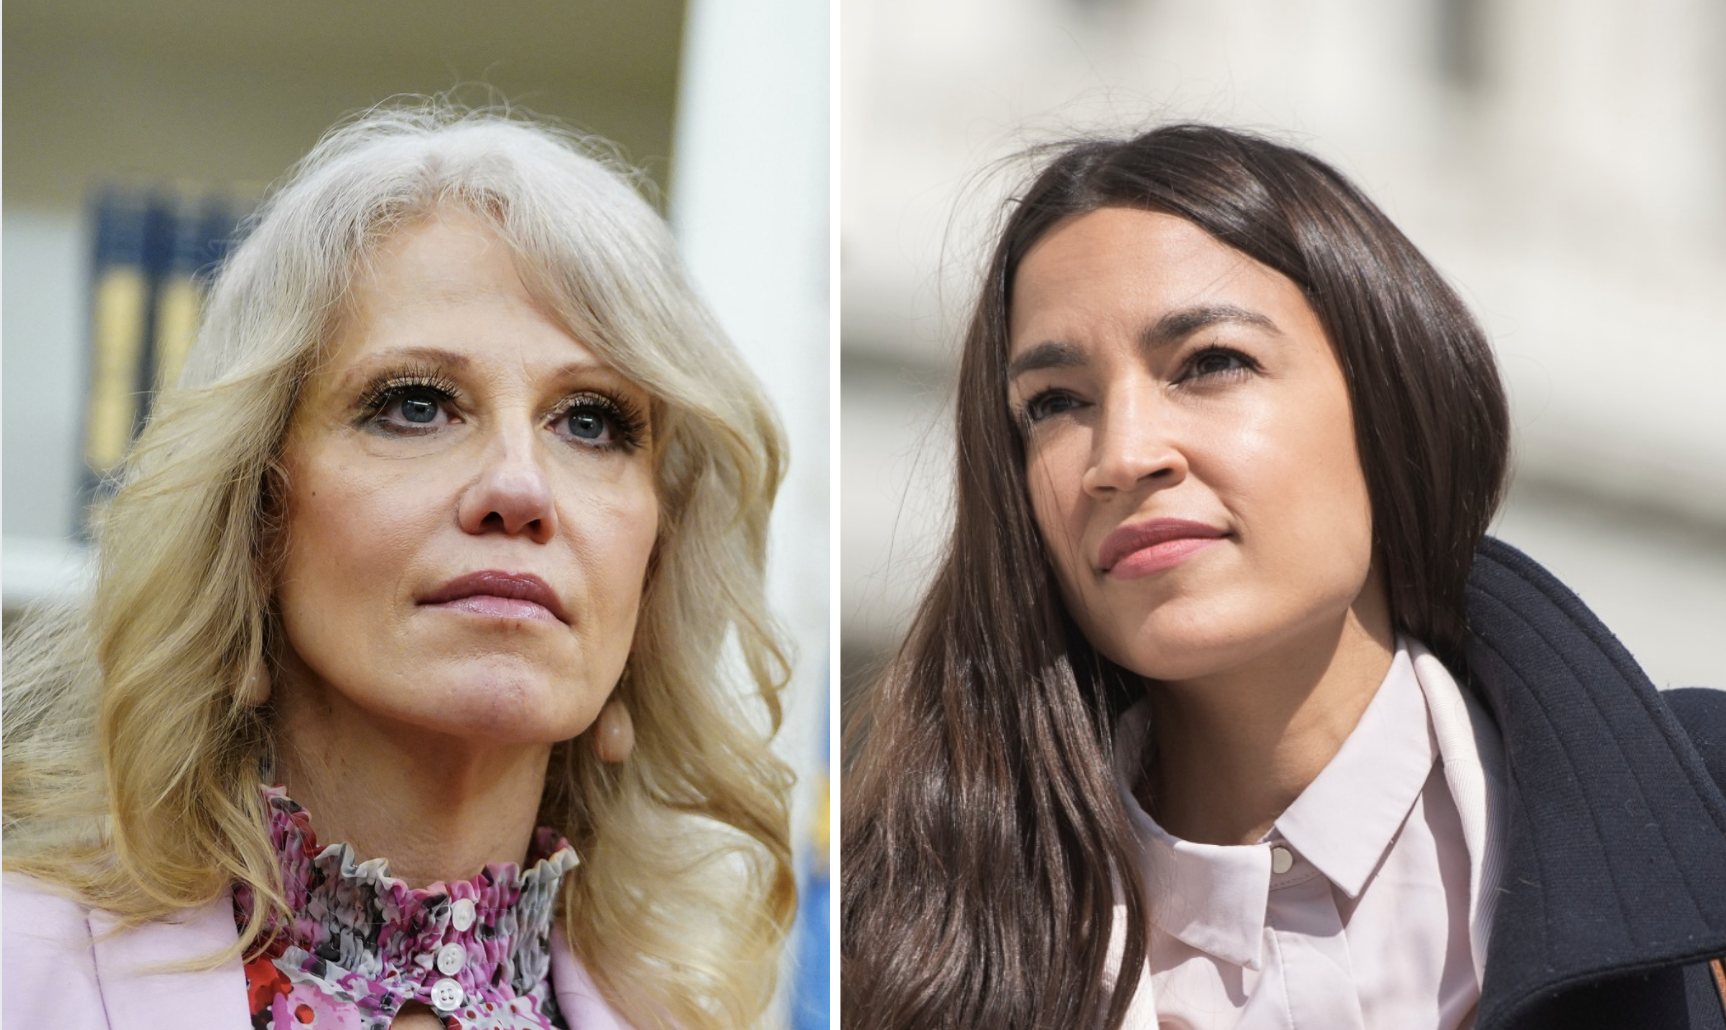 AOC Perfectly Shamed Kellyanne for Trying to Drag Biden for Not Supporting the Green New Deal During Debate